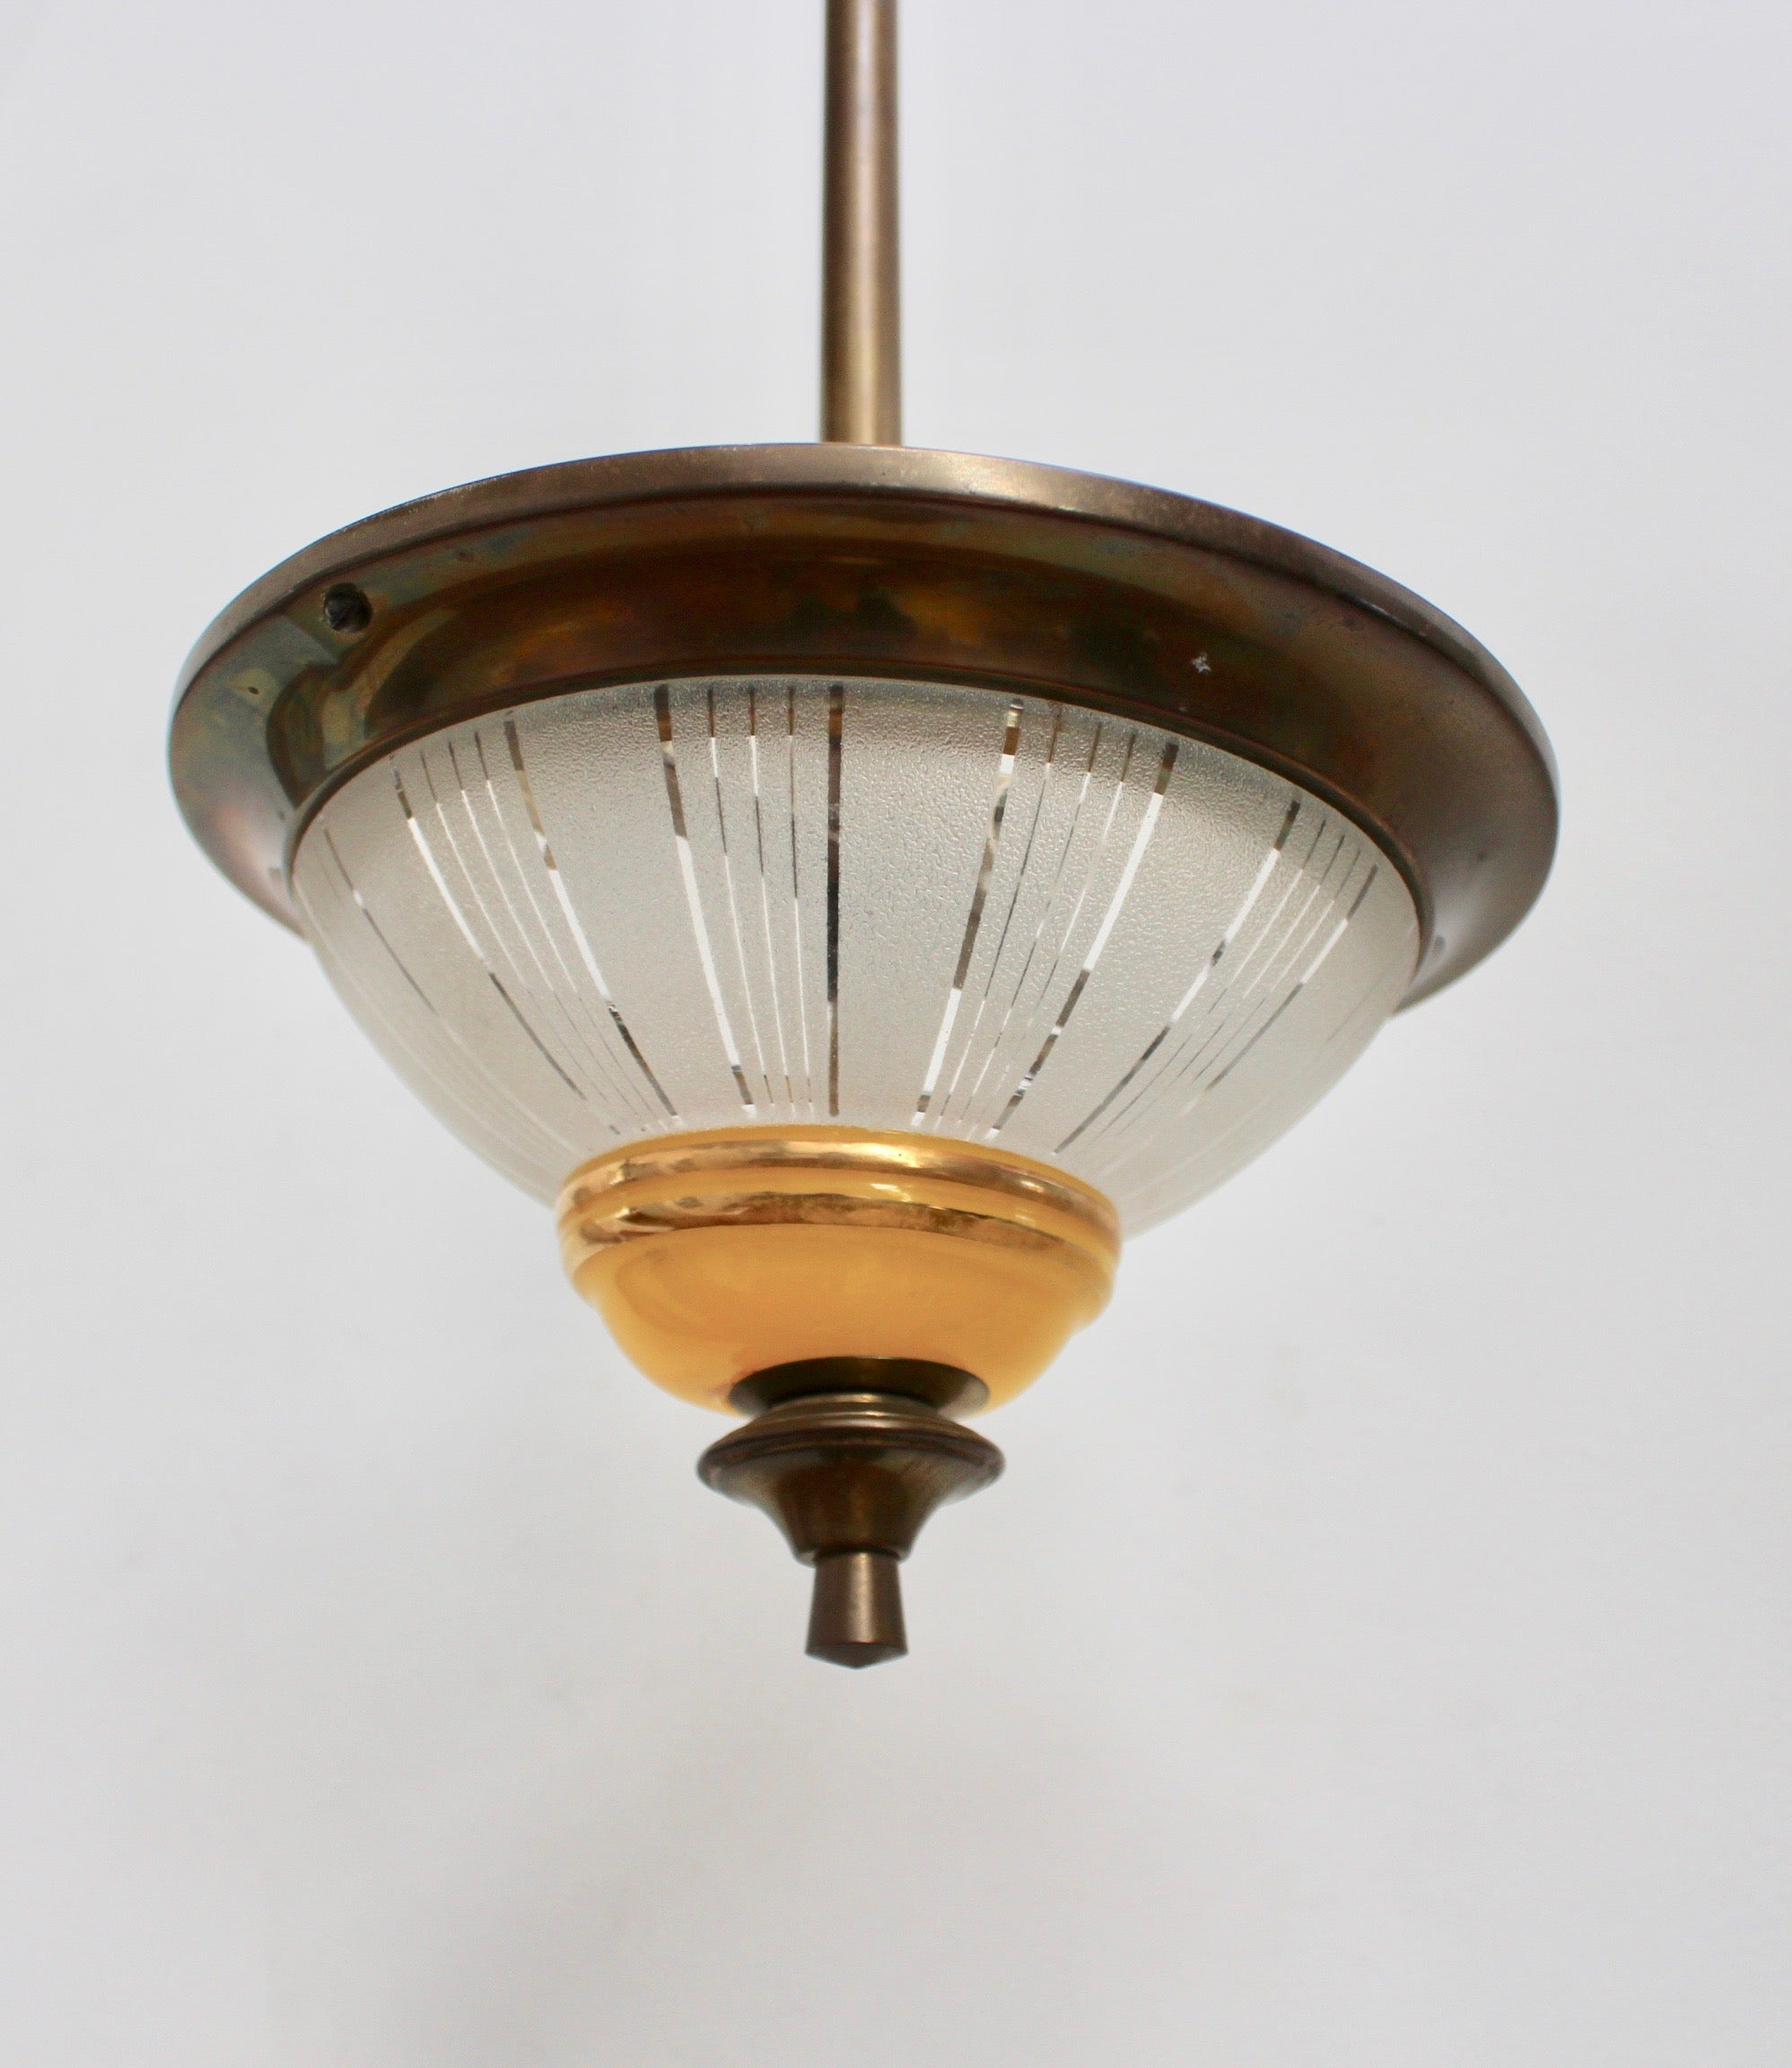 French Mid-Century Conical Ceiling Light (circa 1940s)